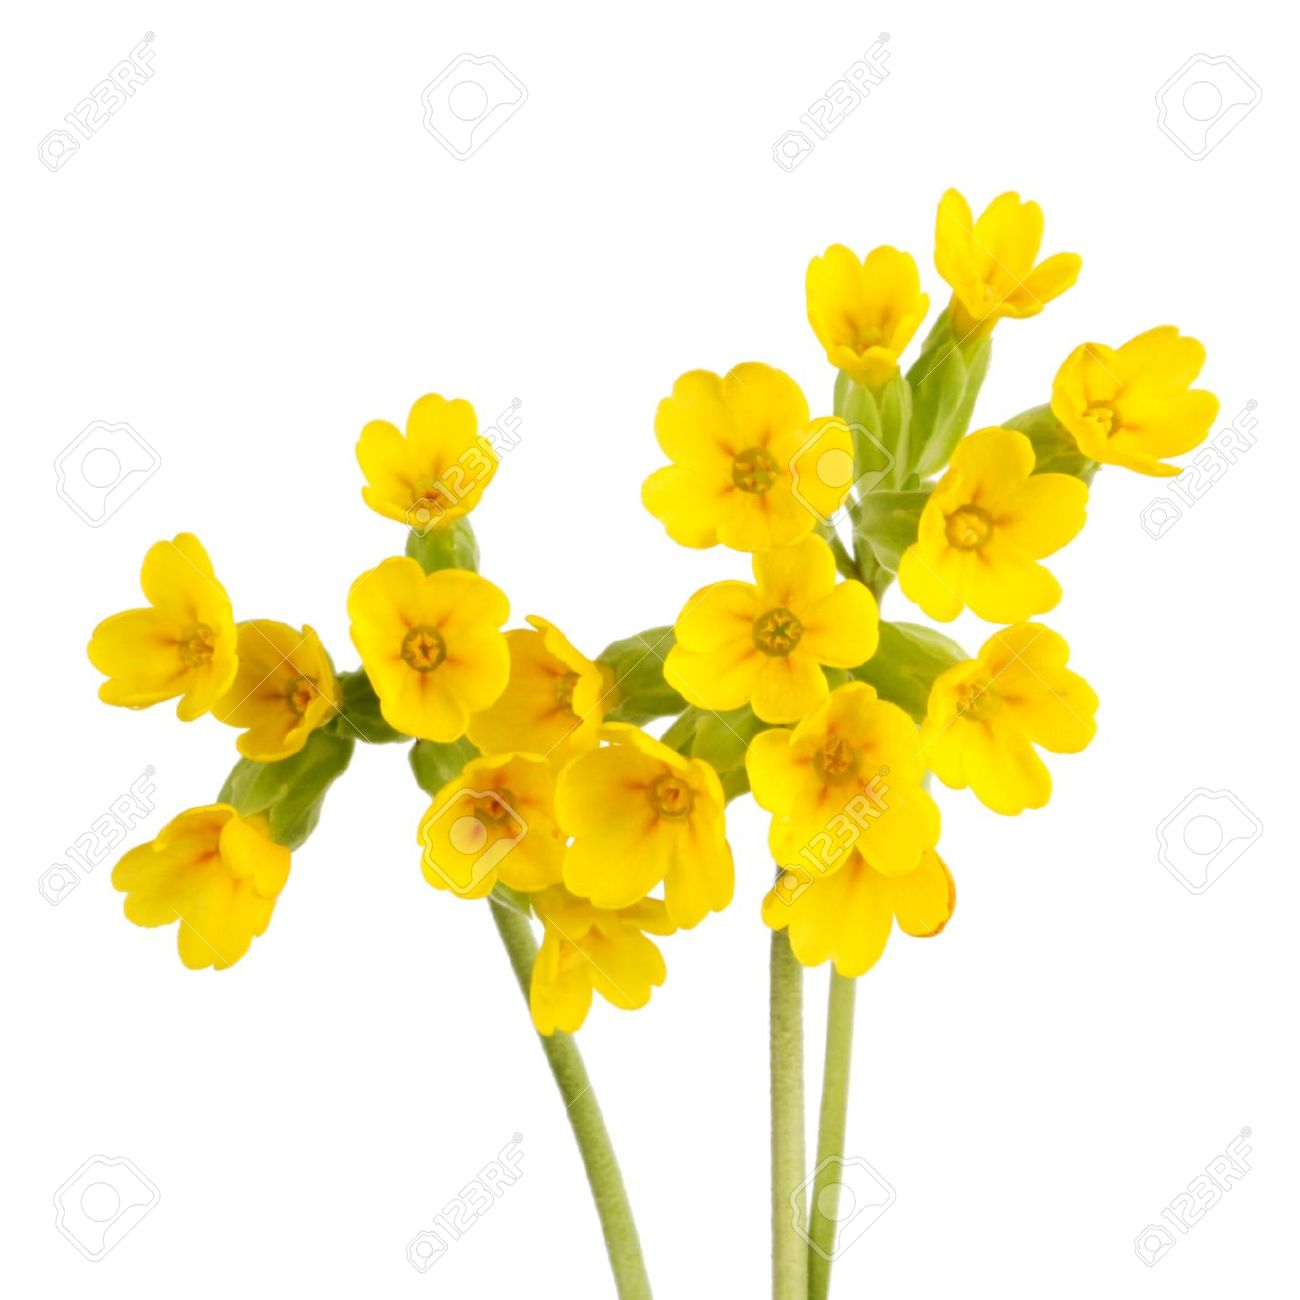 Three Stems With Yellow Flowers Of The Cowslip Primula Veris